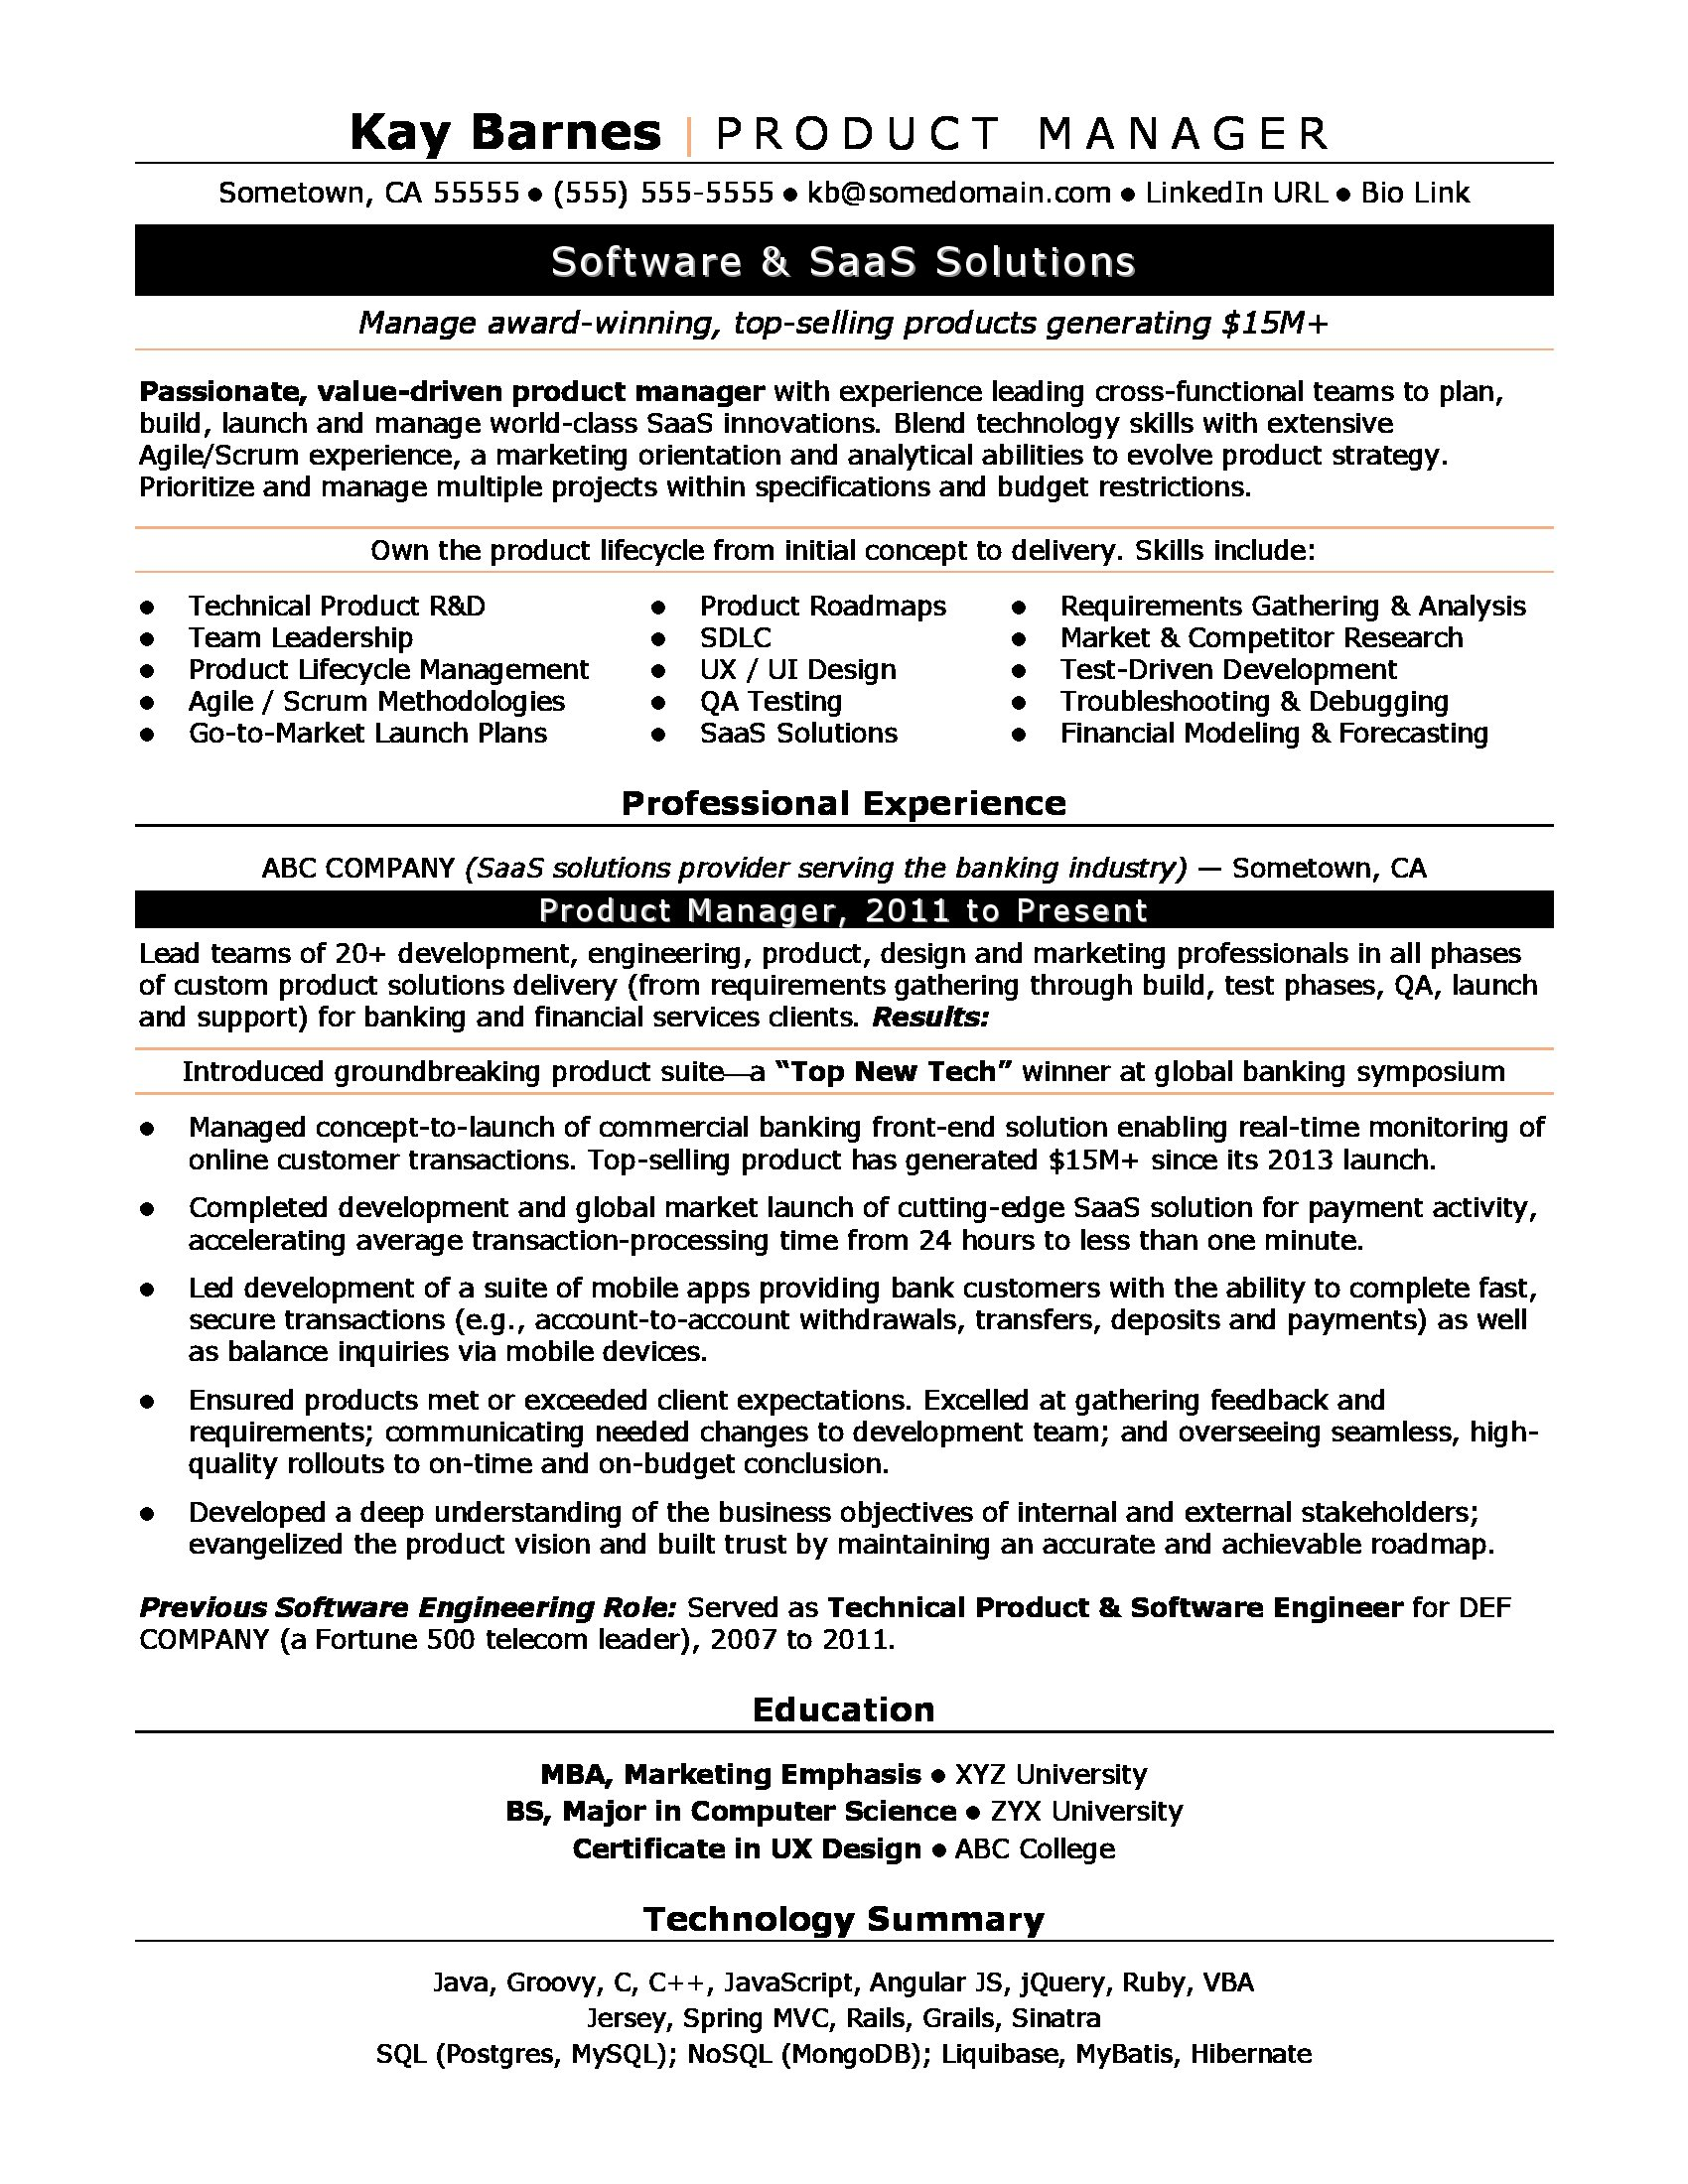 product manager resume sample monster software development summary productmanager Resume Software Development Manager Resume Summary